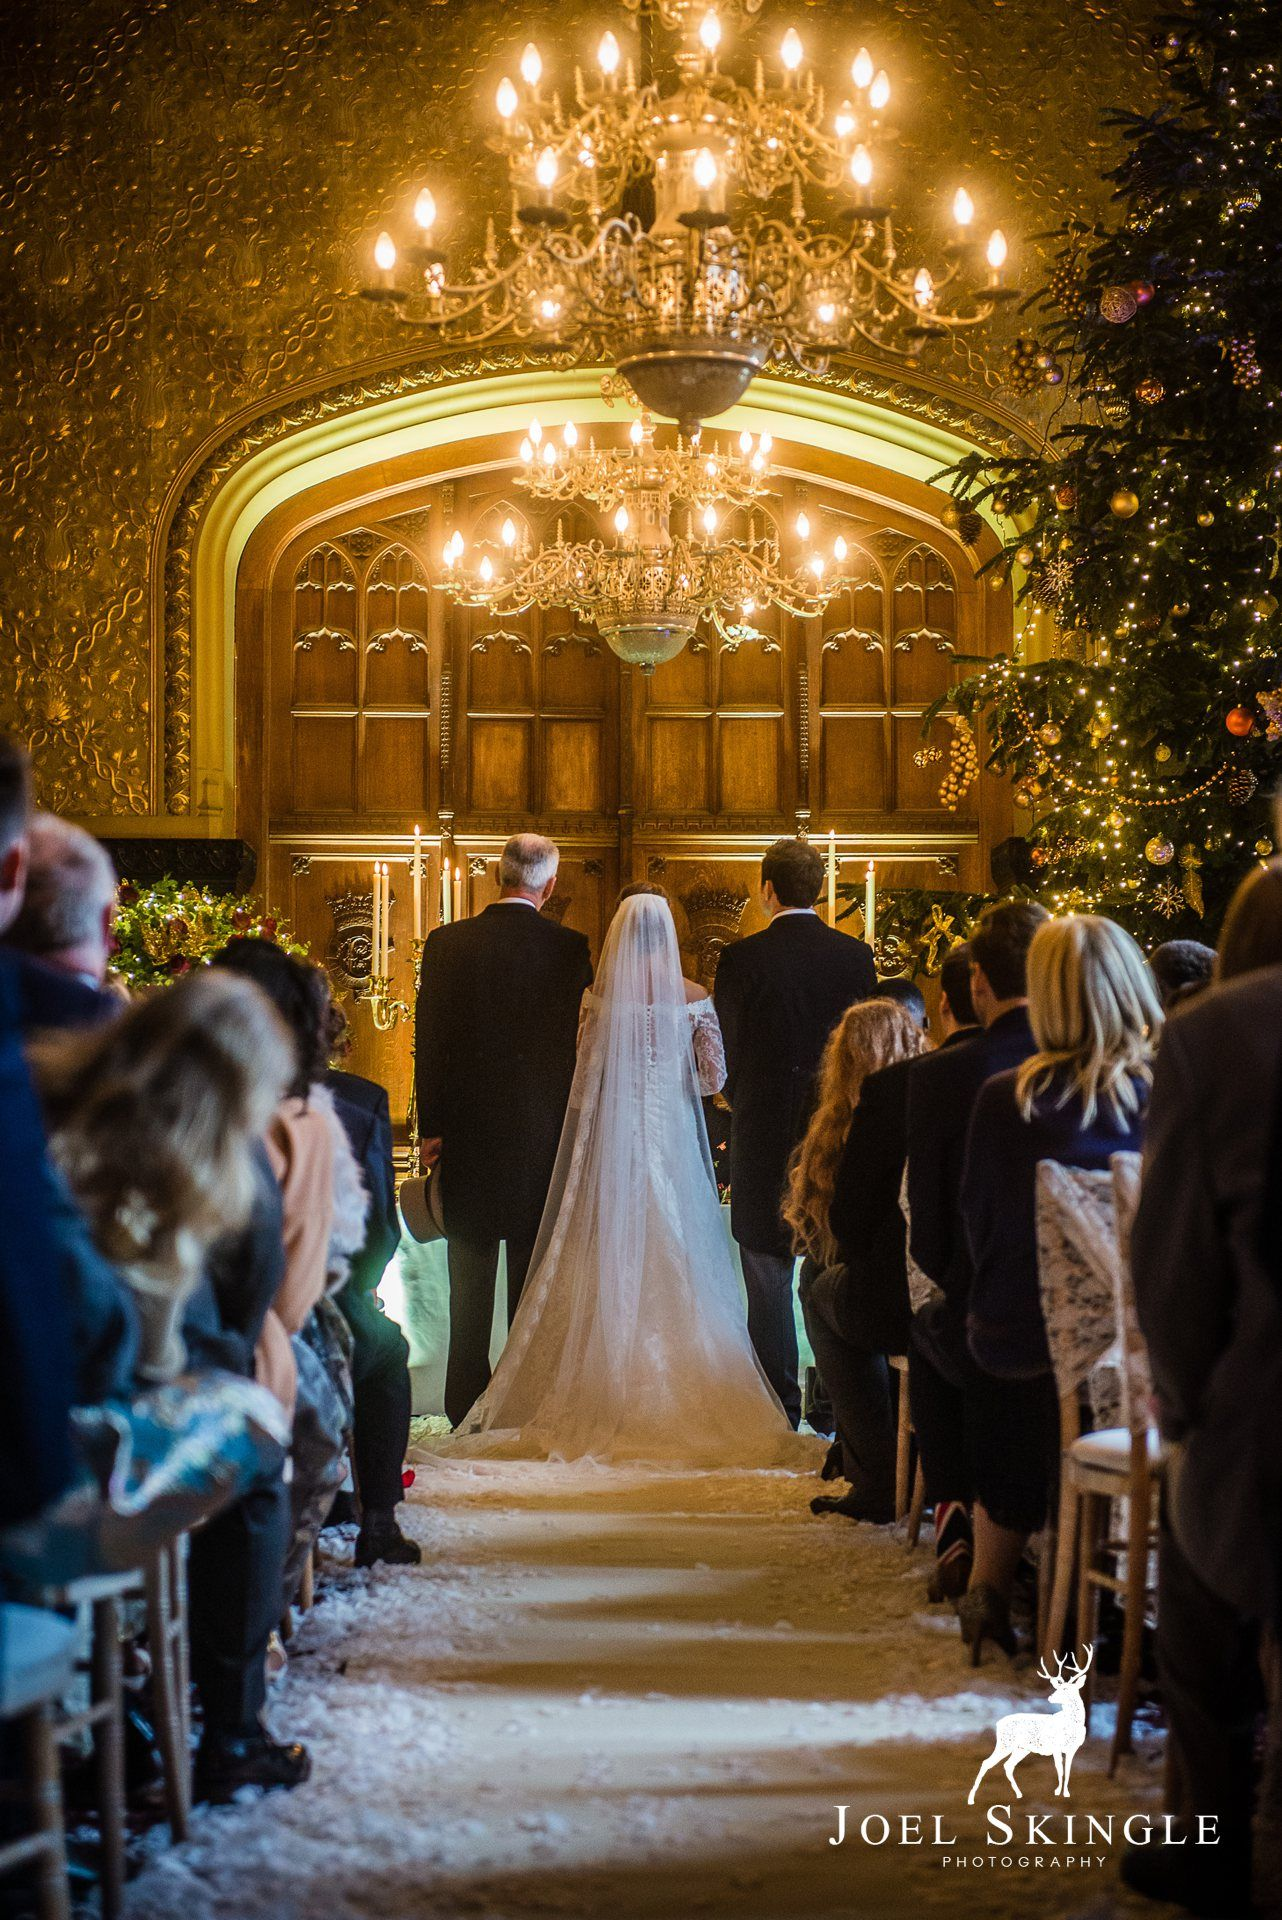 budget wedding venues north yorkshire%0A Carlton Towers in Goole  Yorkshire  is a majestic wedding venue in Carlton   The Victorian Gothic property is exclusive for     wedding guests